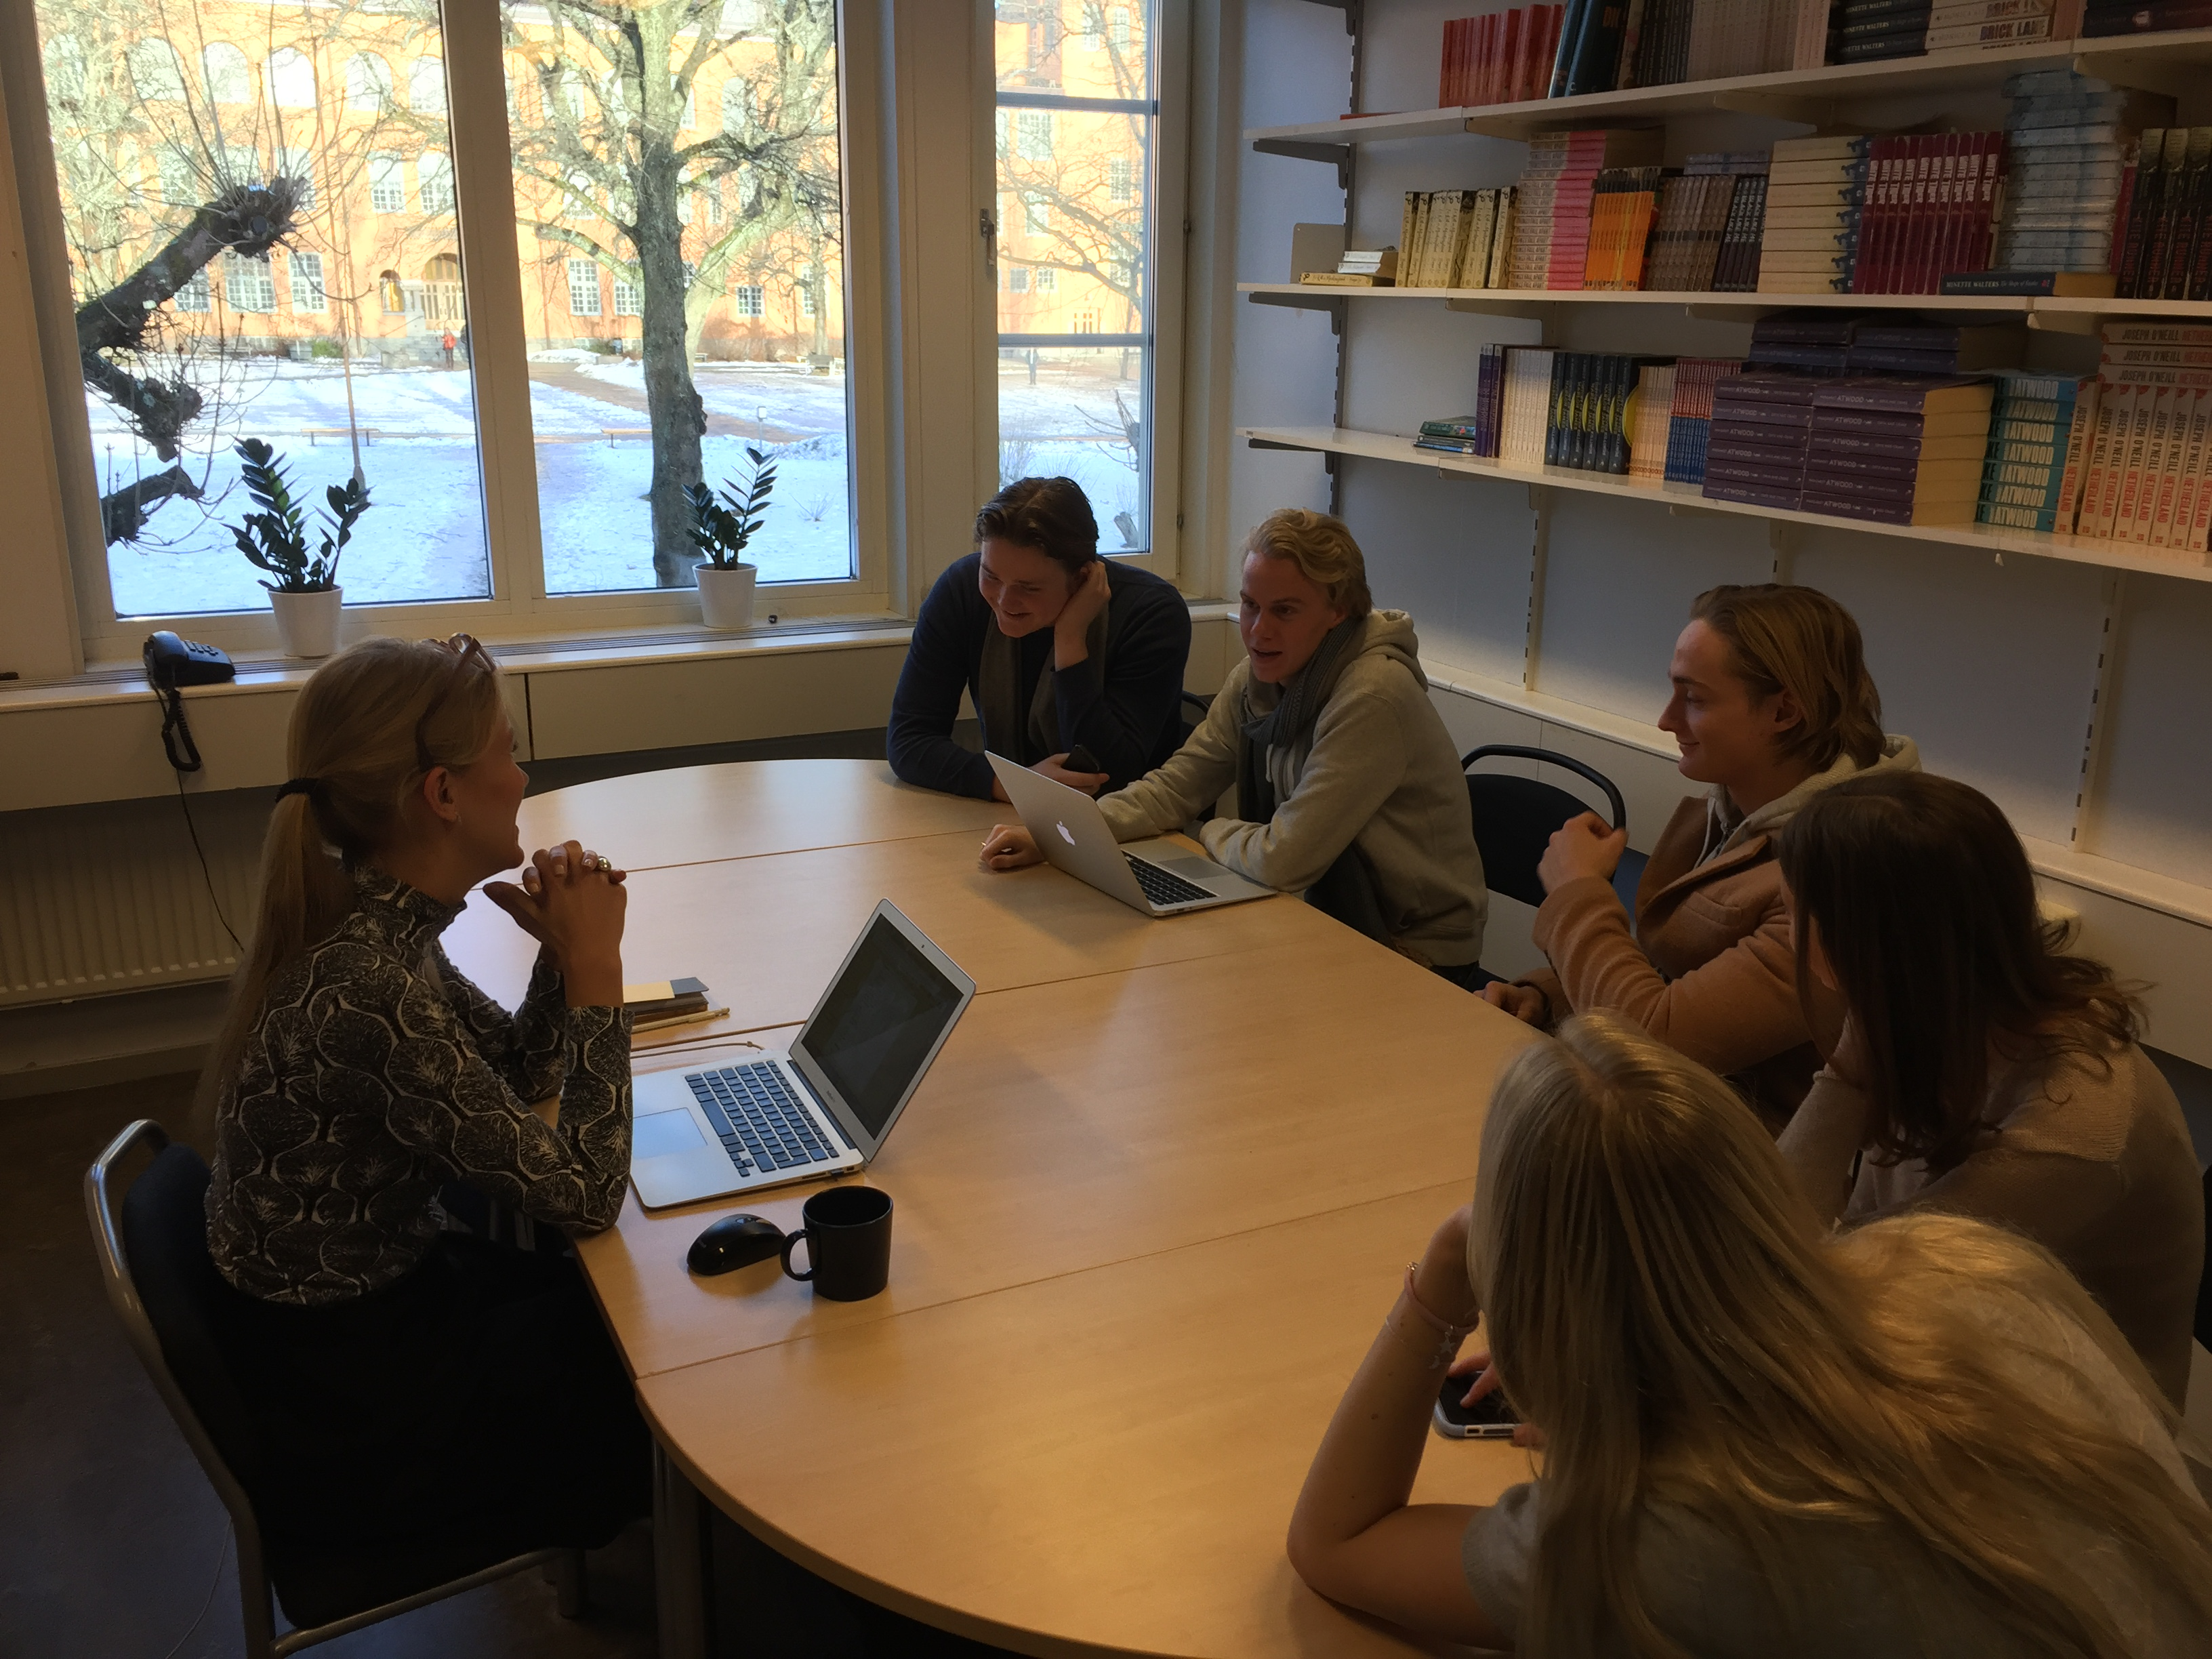 » Students explain Swedish culture to non-Swedes in their year 1 project